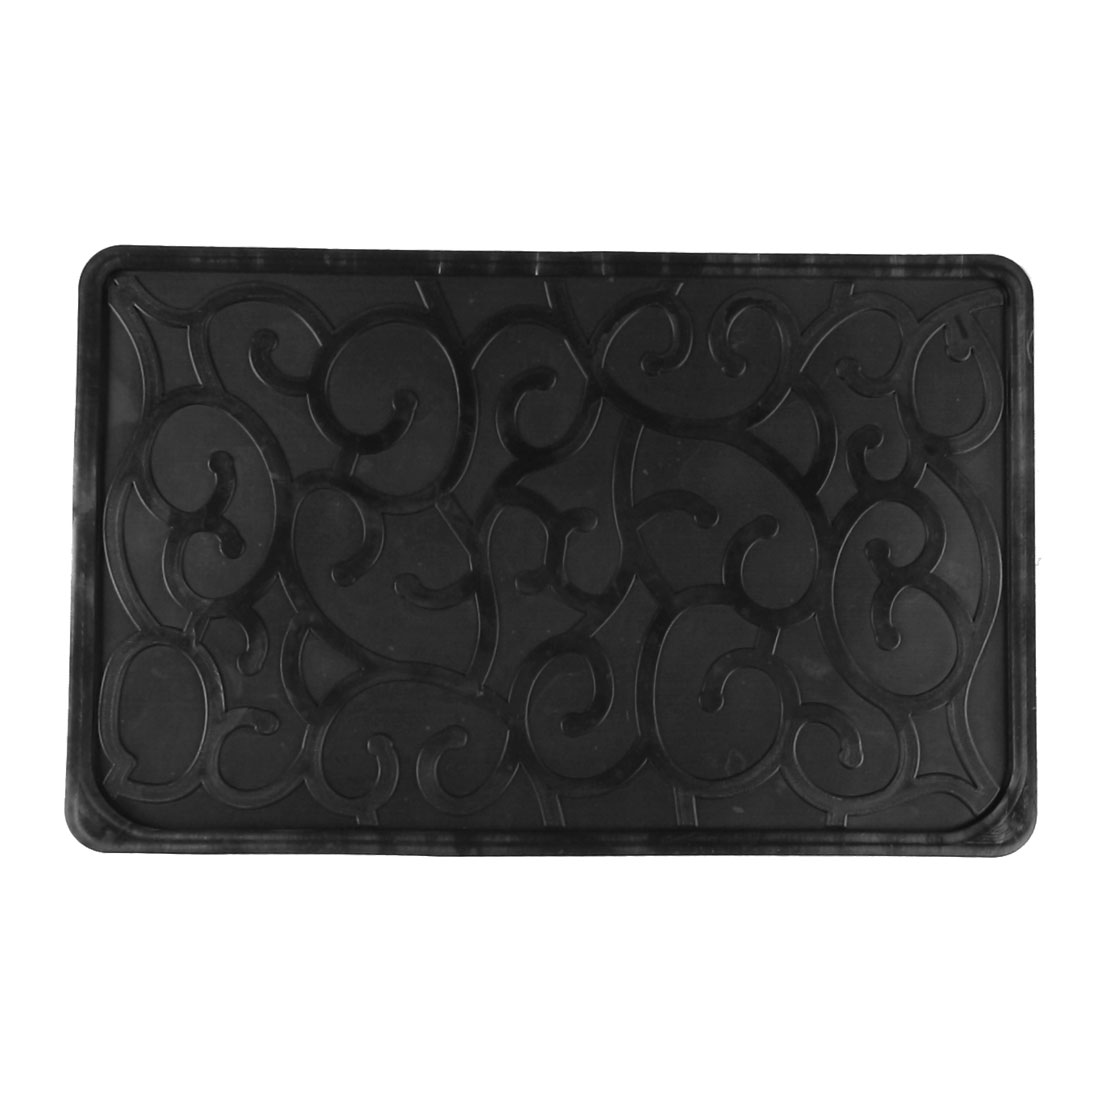 Auto Car Paisley Pattern Phone Holding Nonslip Rubber Pad Mat Black